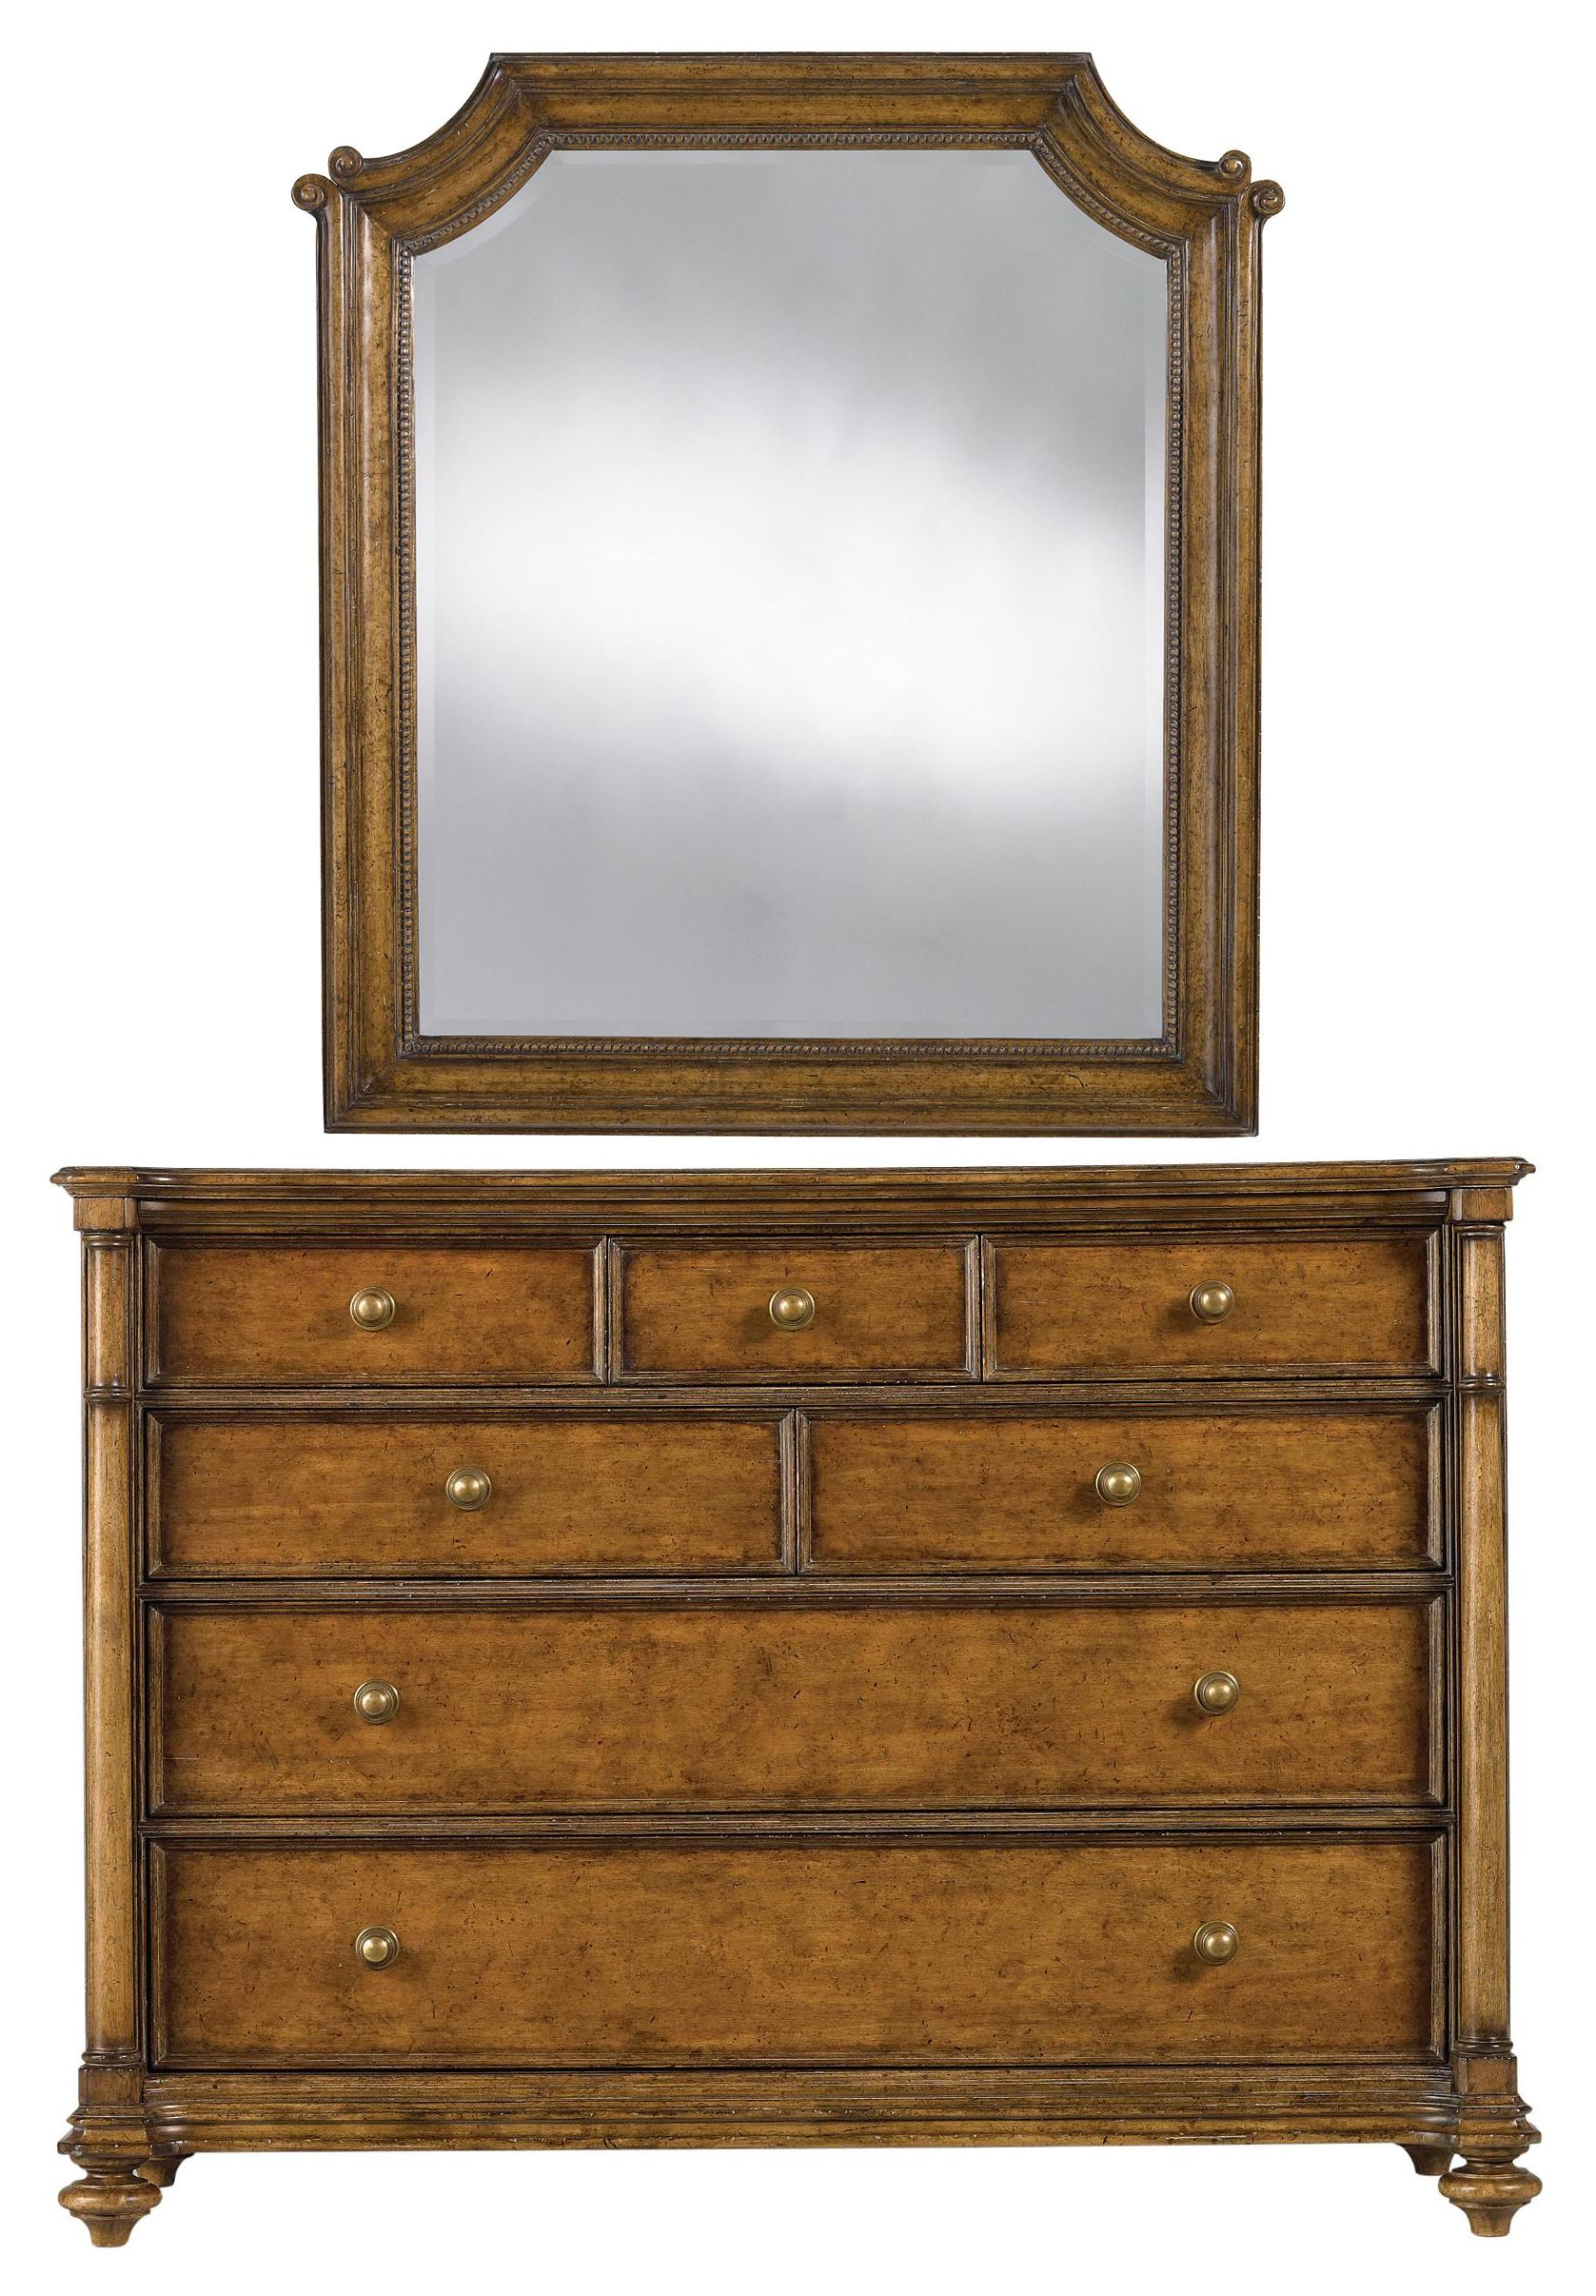 Stanley Furniture Arrondissement Belle Mode Dresser & Musée Mirror - Item Number: 222-63-05+30